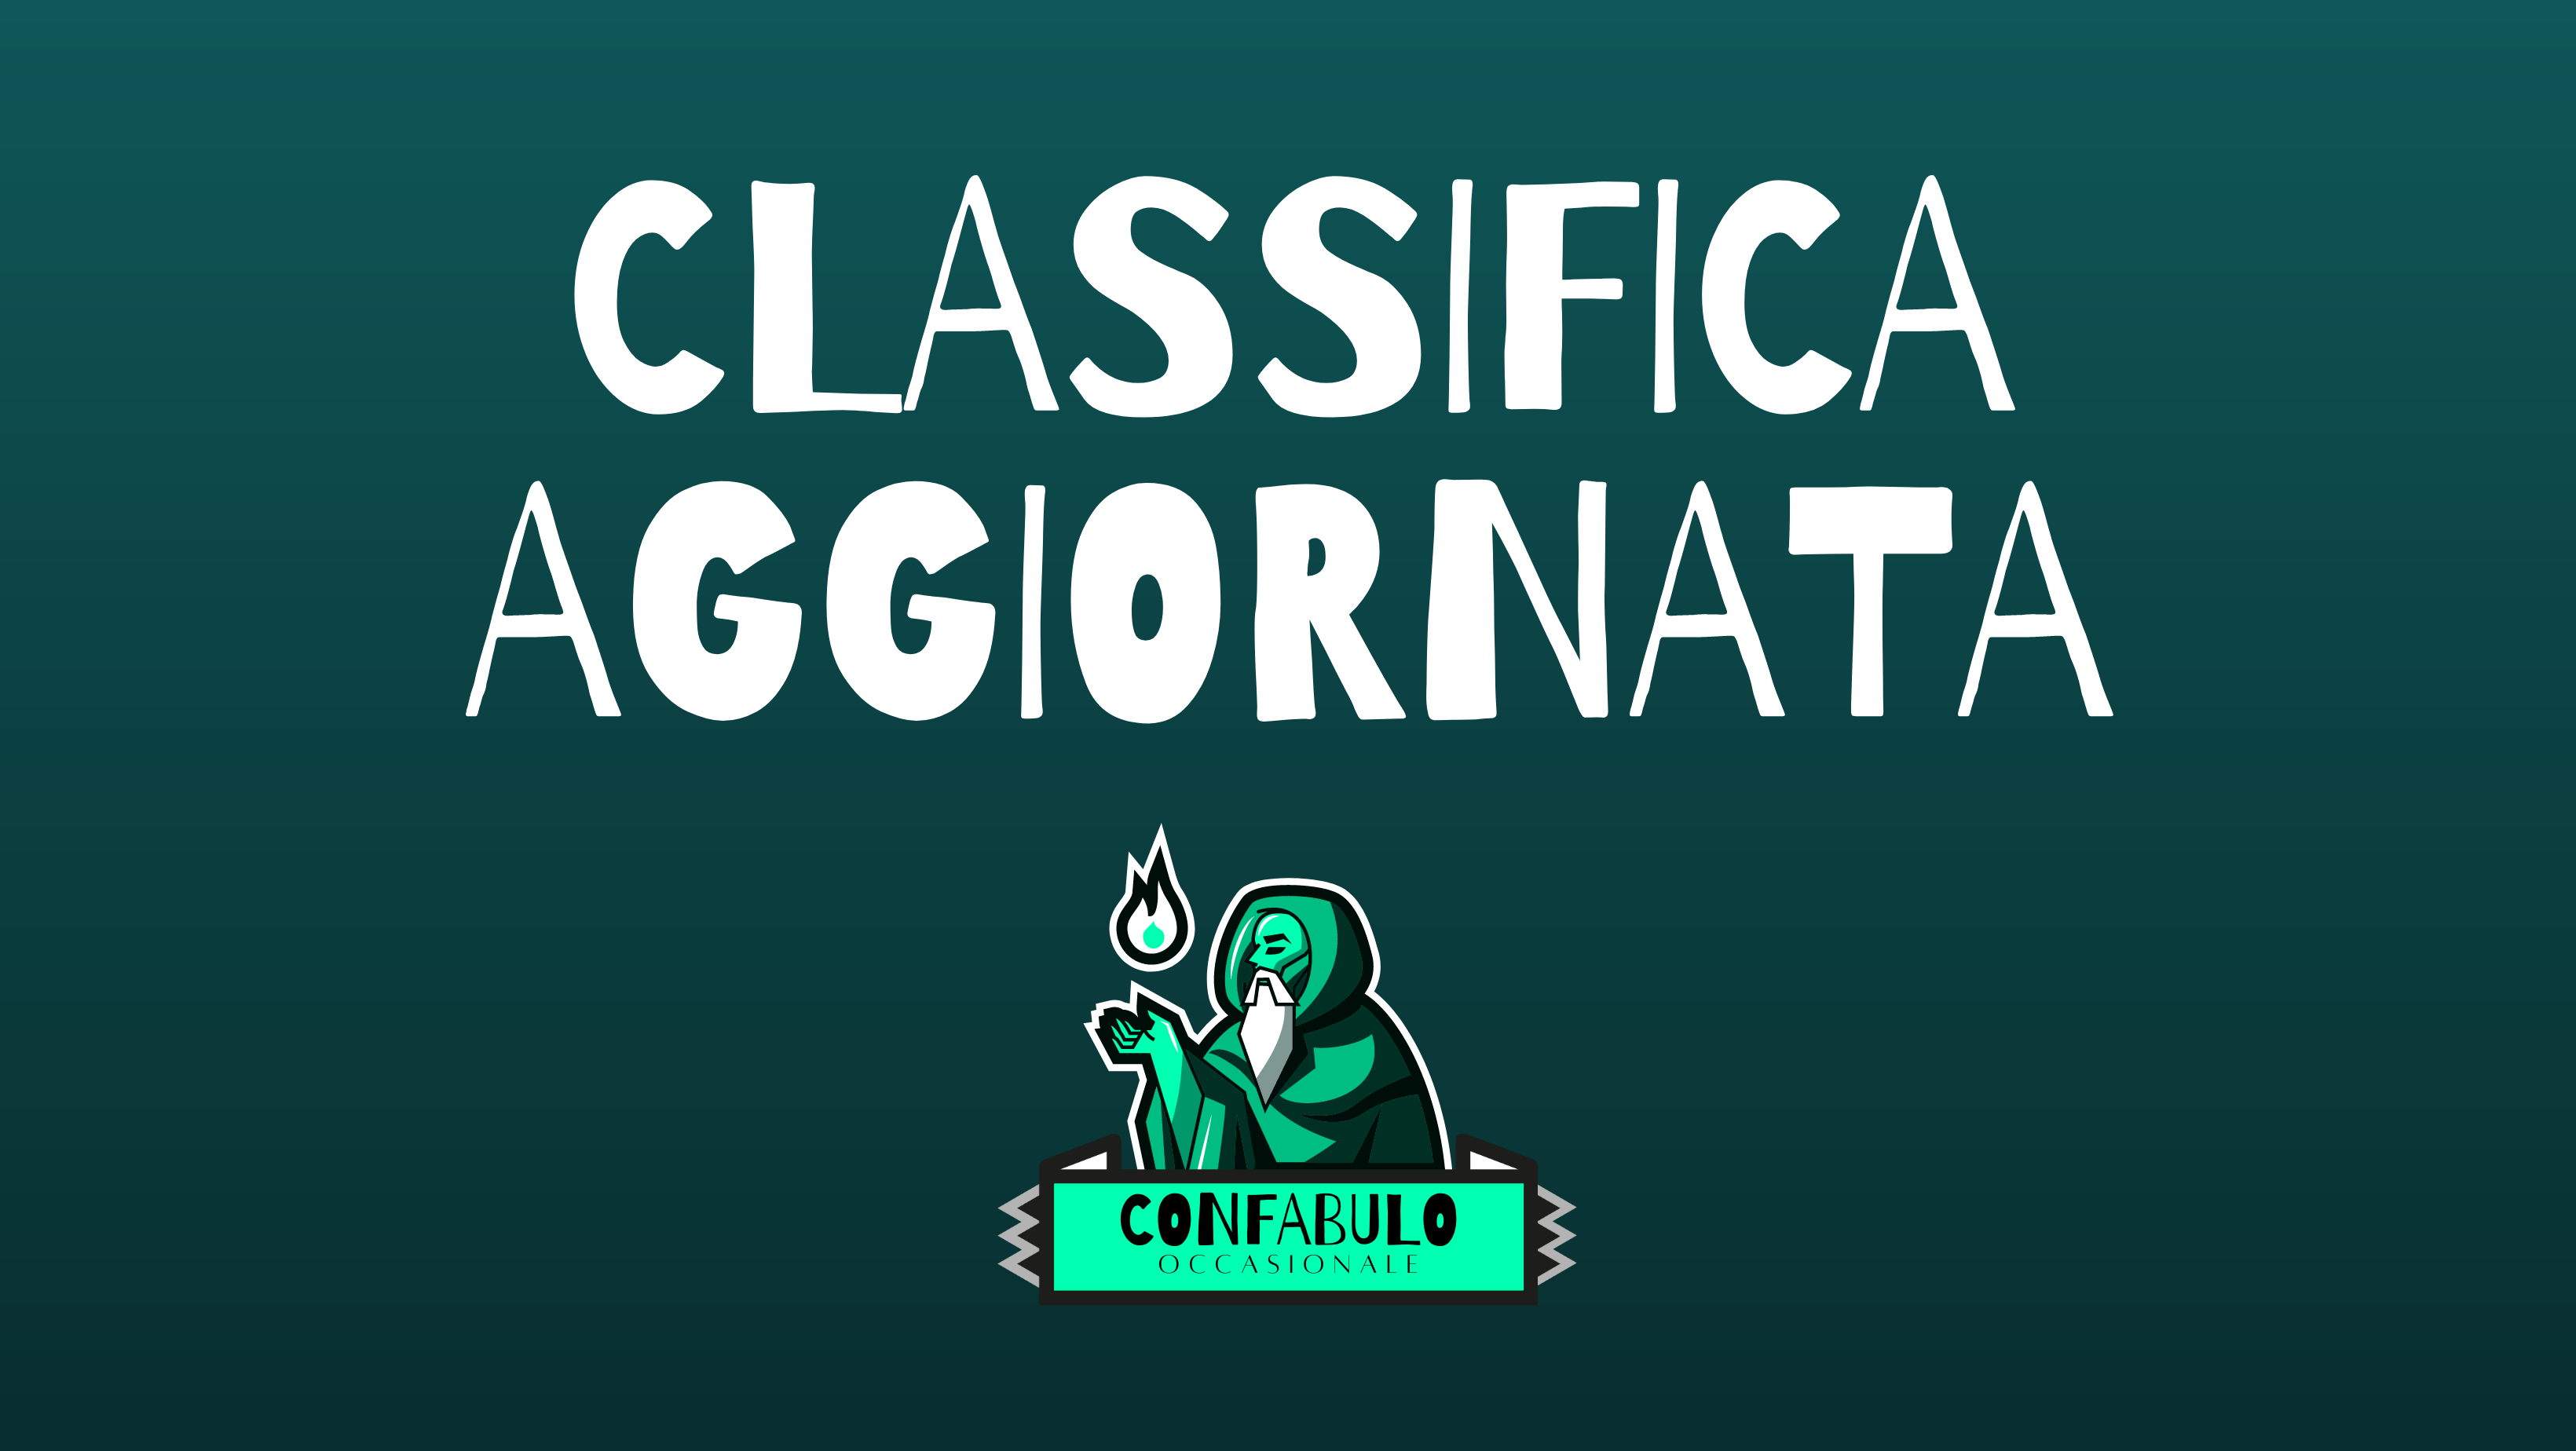 Confabulo Occasionale G1G3